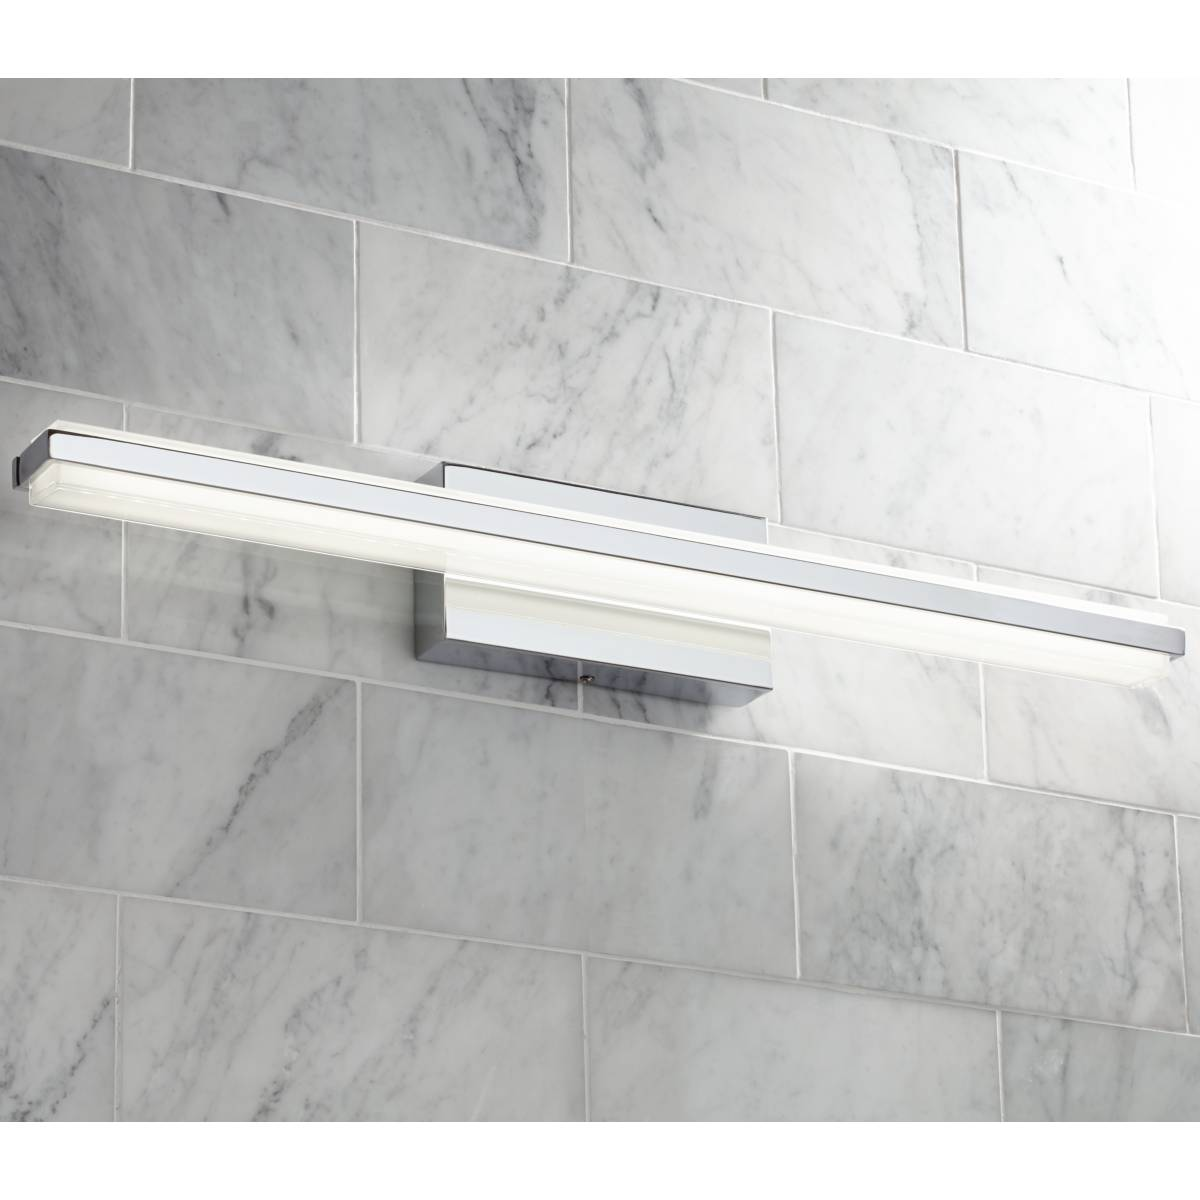 Led Bathroom Lighting Led Vanity Lights And Light Bars